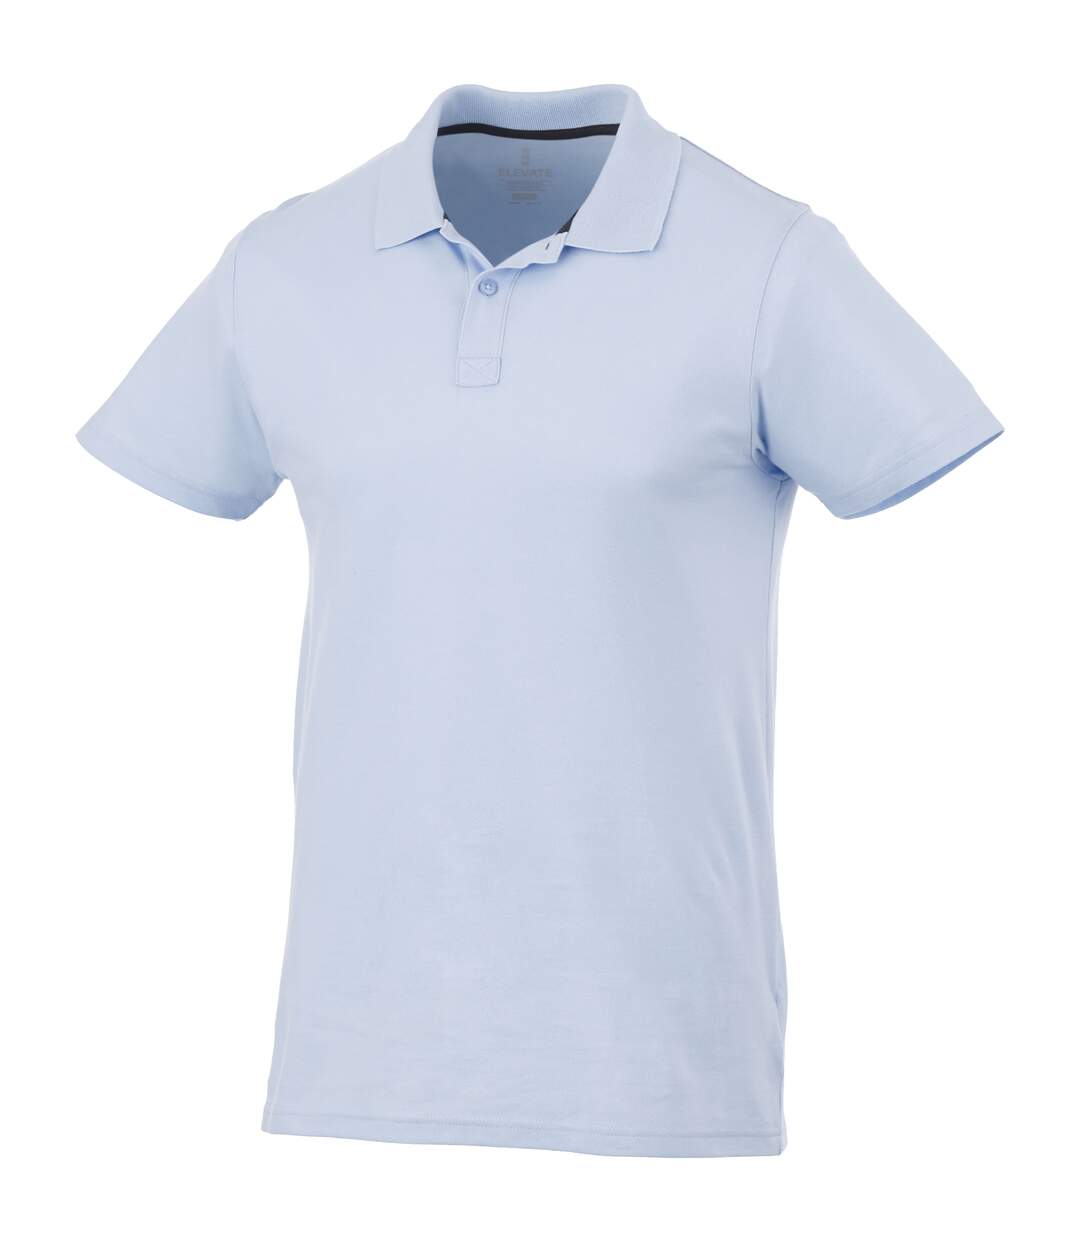 Elevate Primus Short Sleeve Polo (Red) - UTPF1829